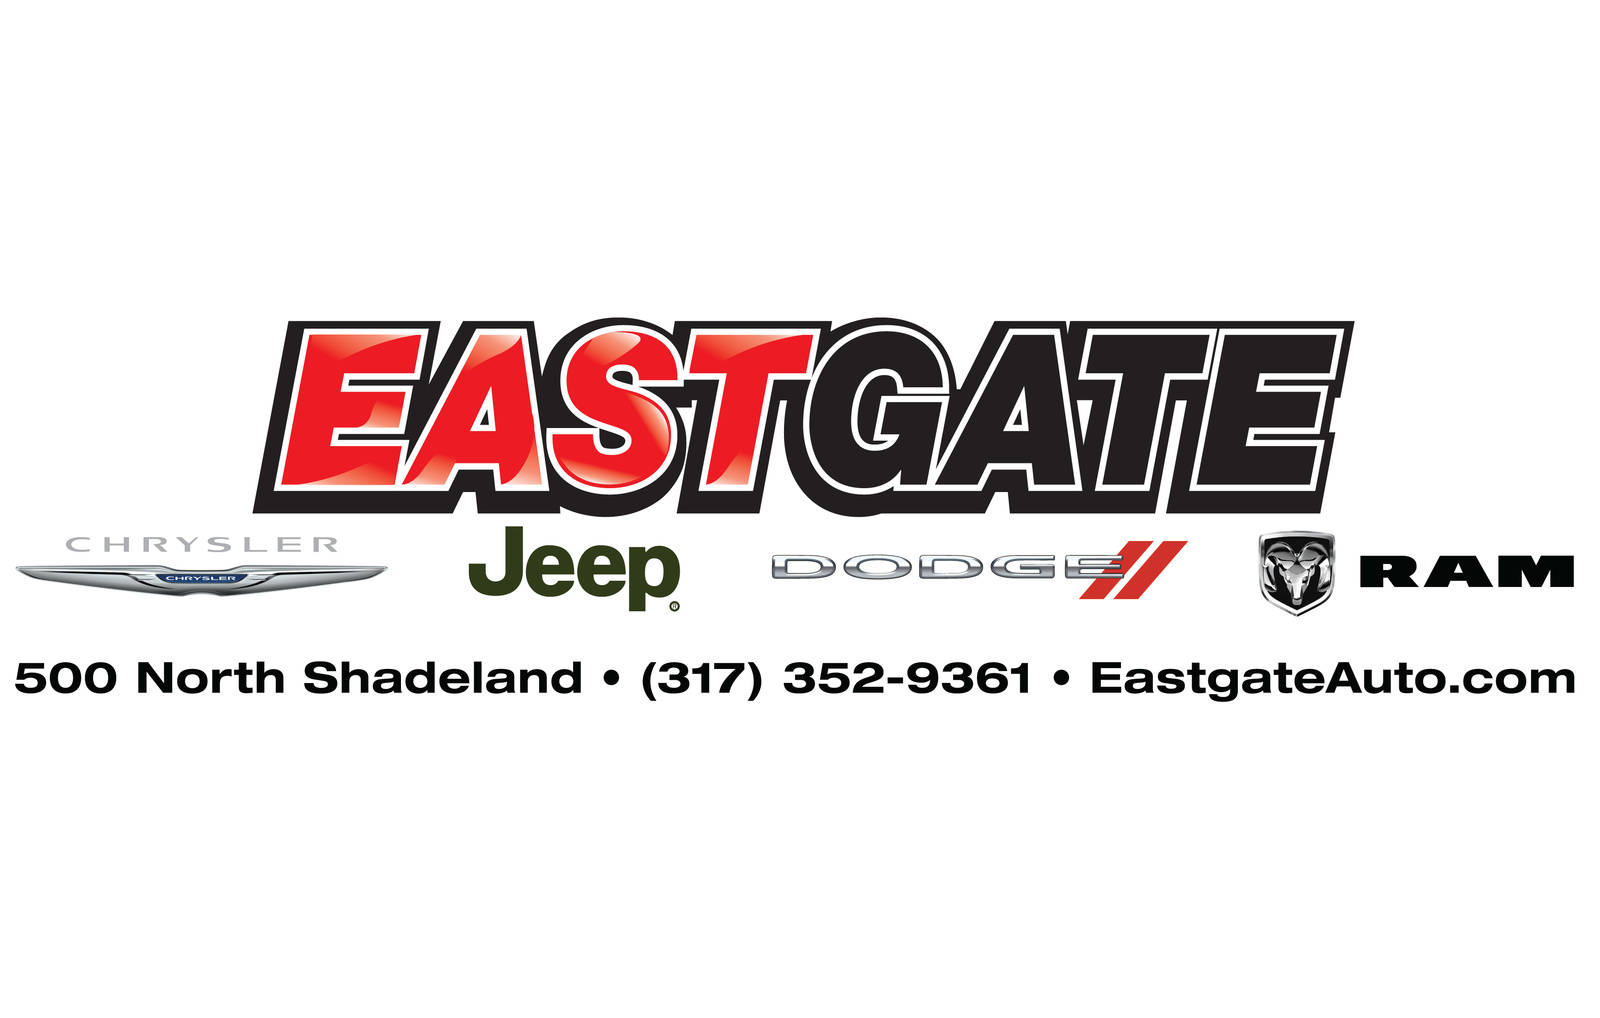 Eastgate Chrysler Jeep Dodge Ram - Indianapolis, IN: Read ...